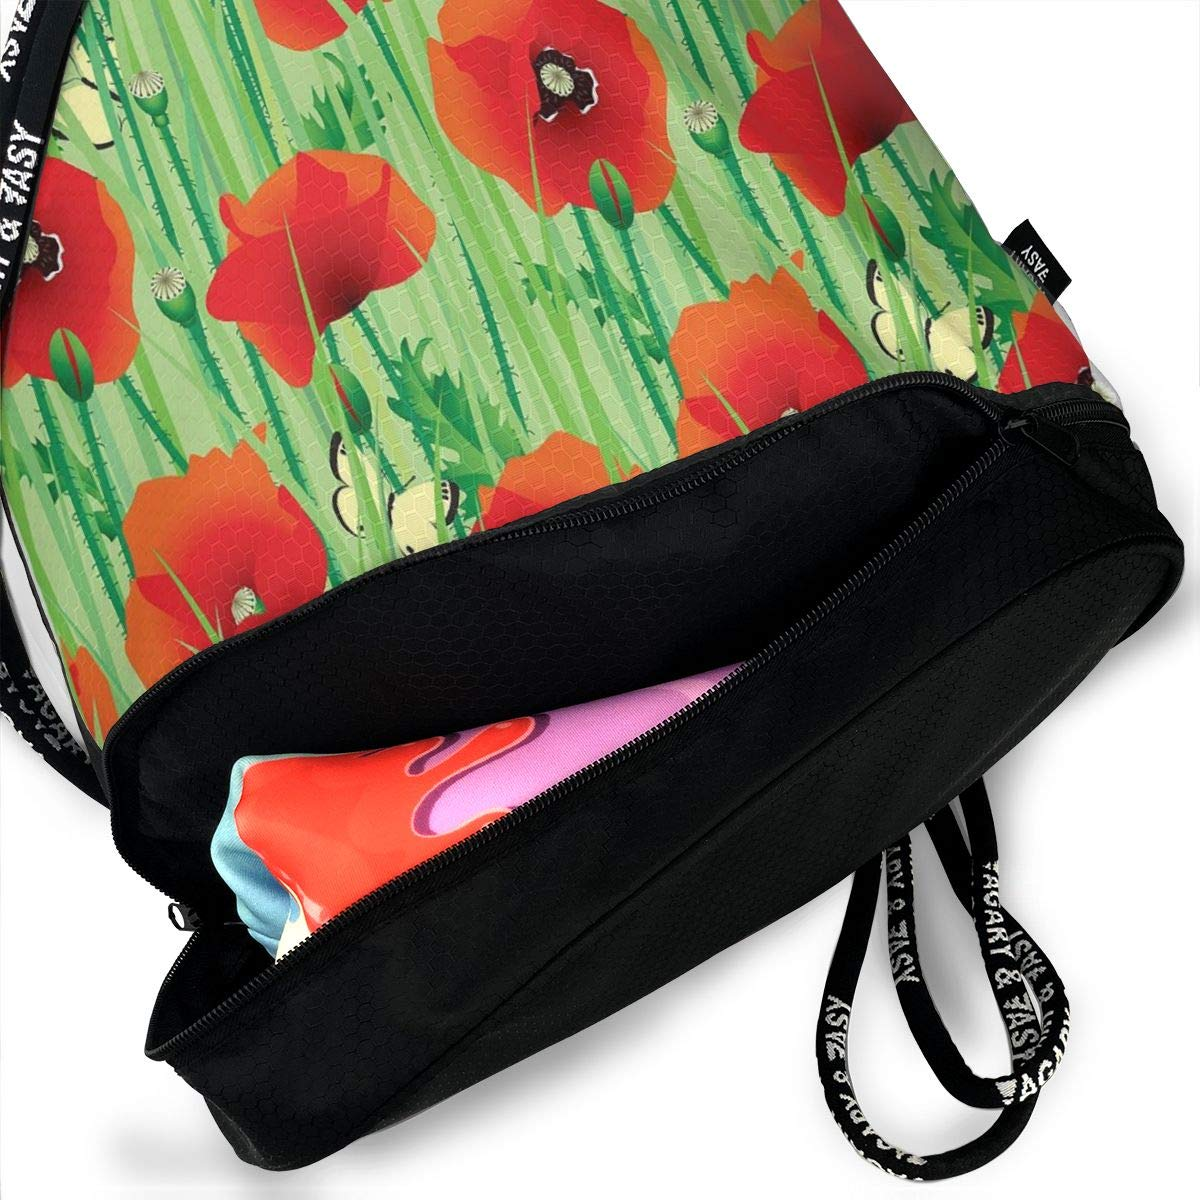 Seuriamin Spring Scarlet Poppy Flowers Field With Butterflies Bundle Mouth Pocket Bag